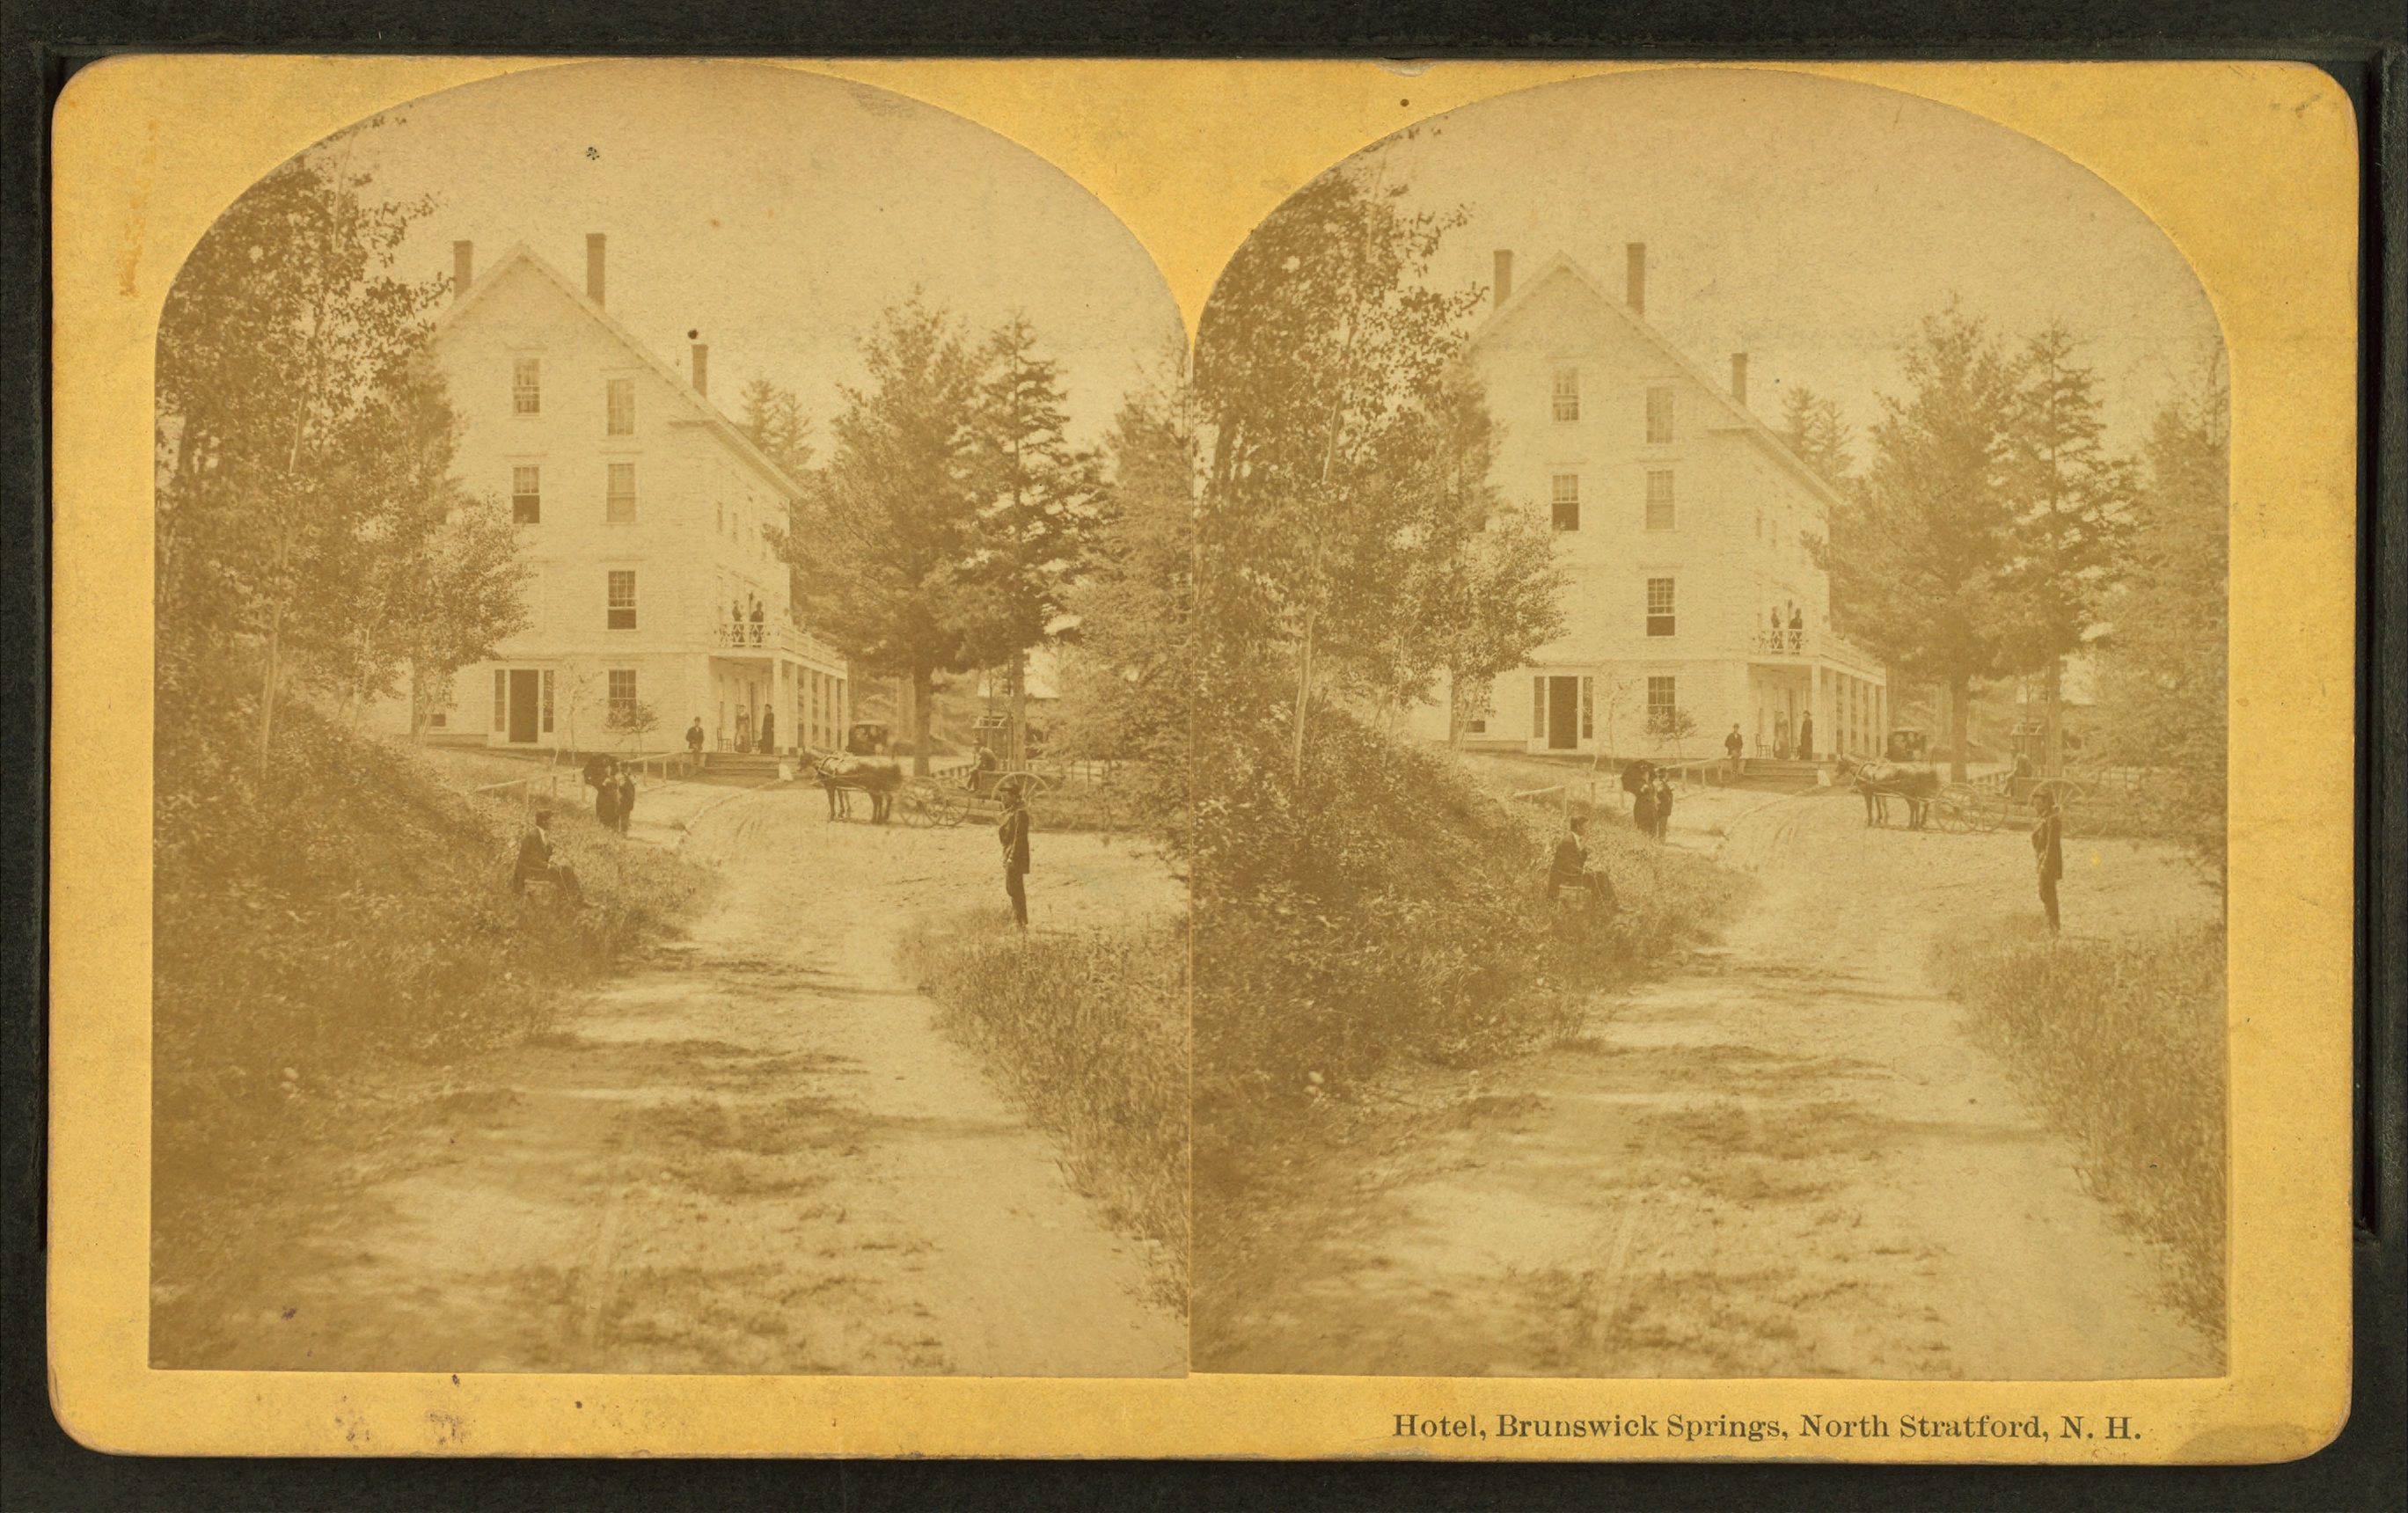 north stratford dating North stratford, nh prison for setting up the armed robberies of seven men who thought they were going to meet women they had messaged on a dating app.